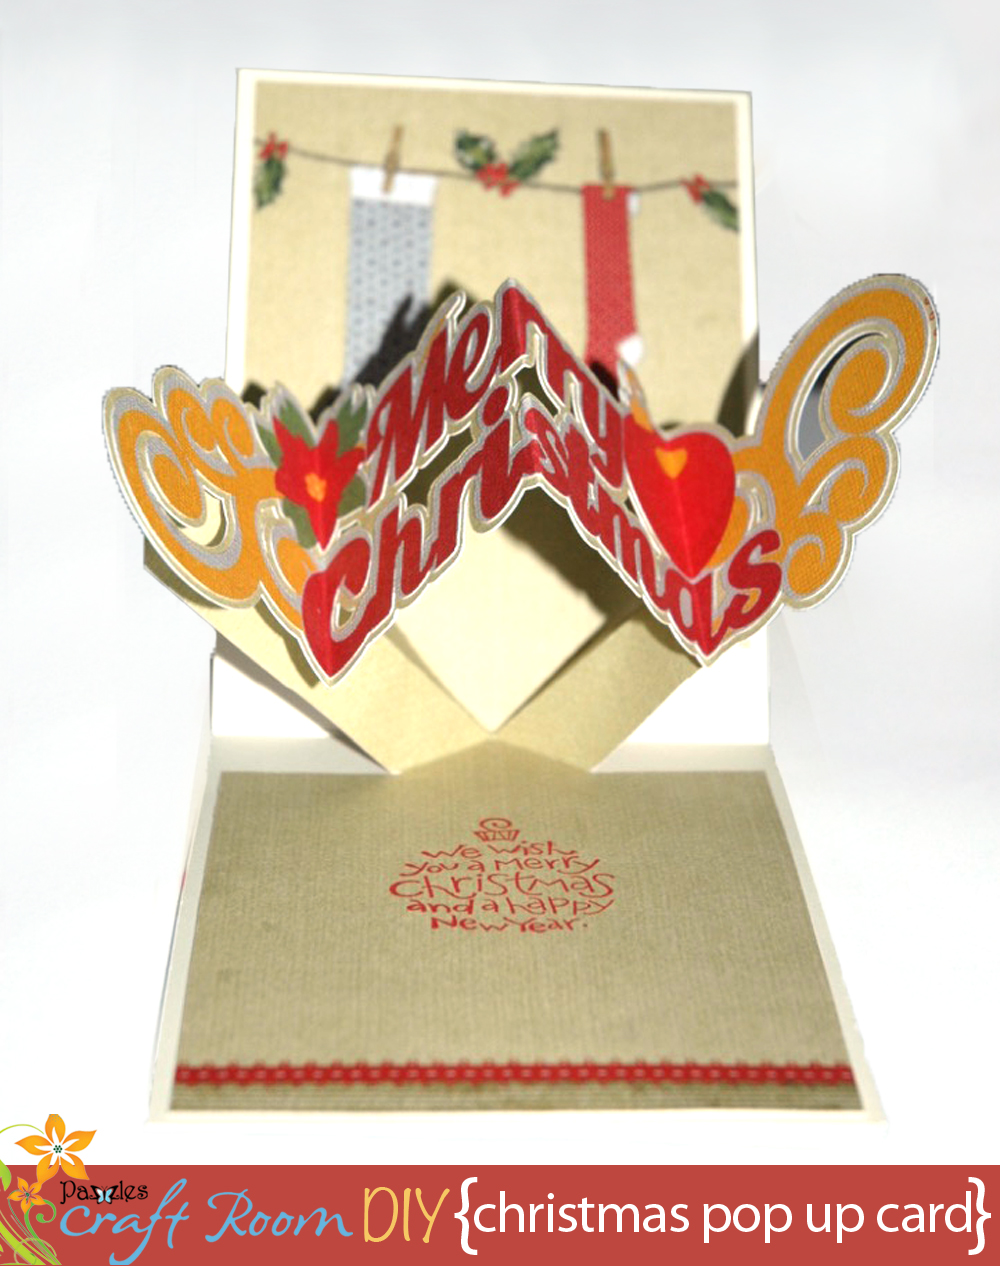 Christmas Pop Up Cards.Pop Up And Twist Christmas Card Pazzles Craft Room